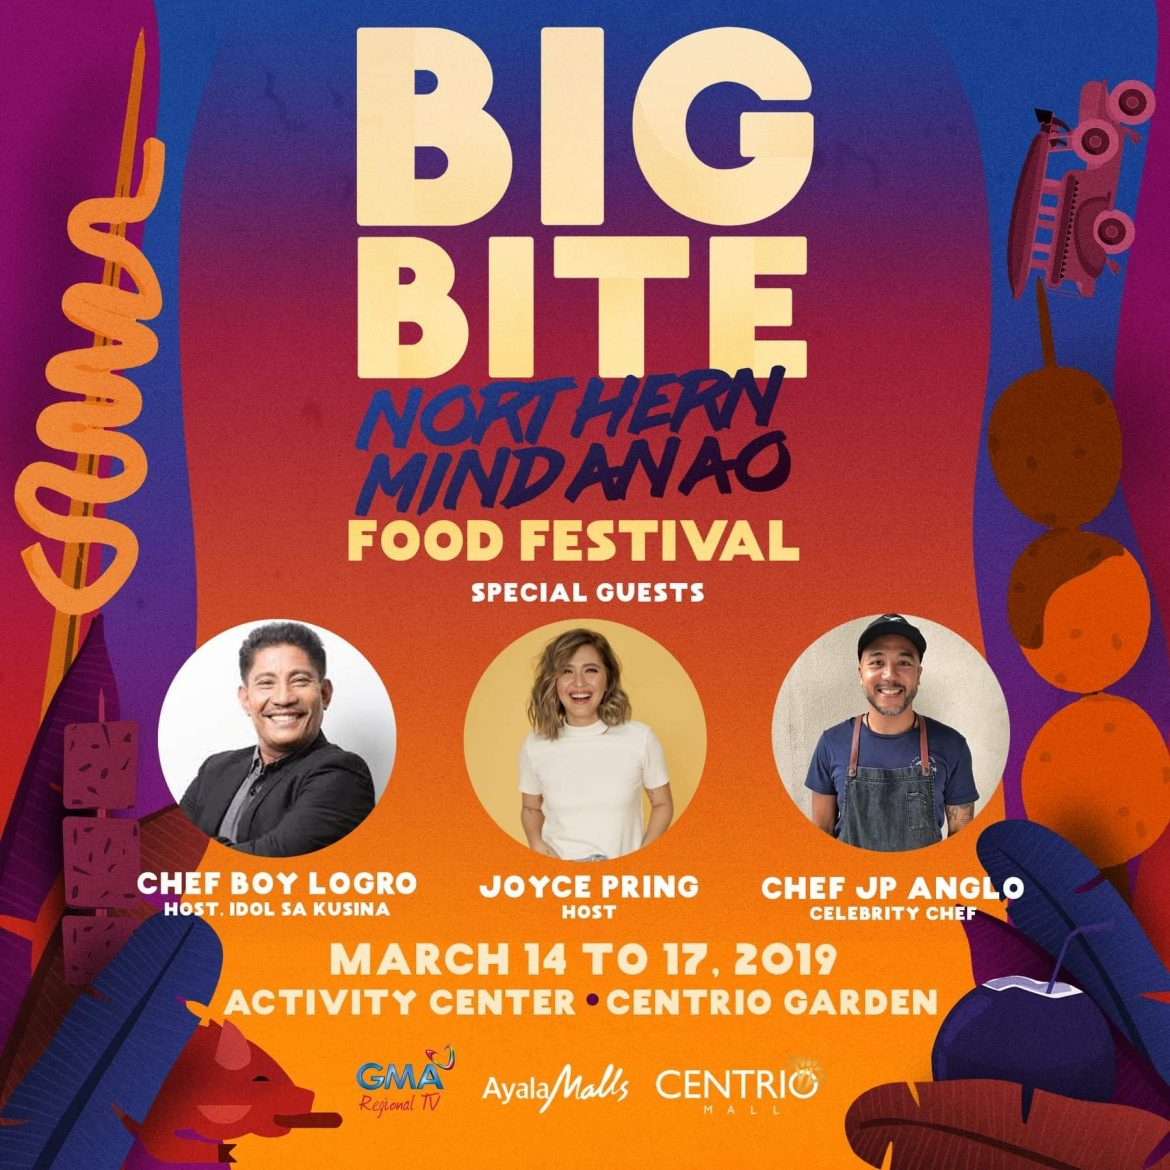 BIG BITE Food Festival 2019